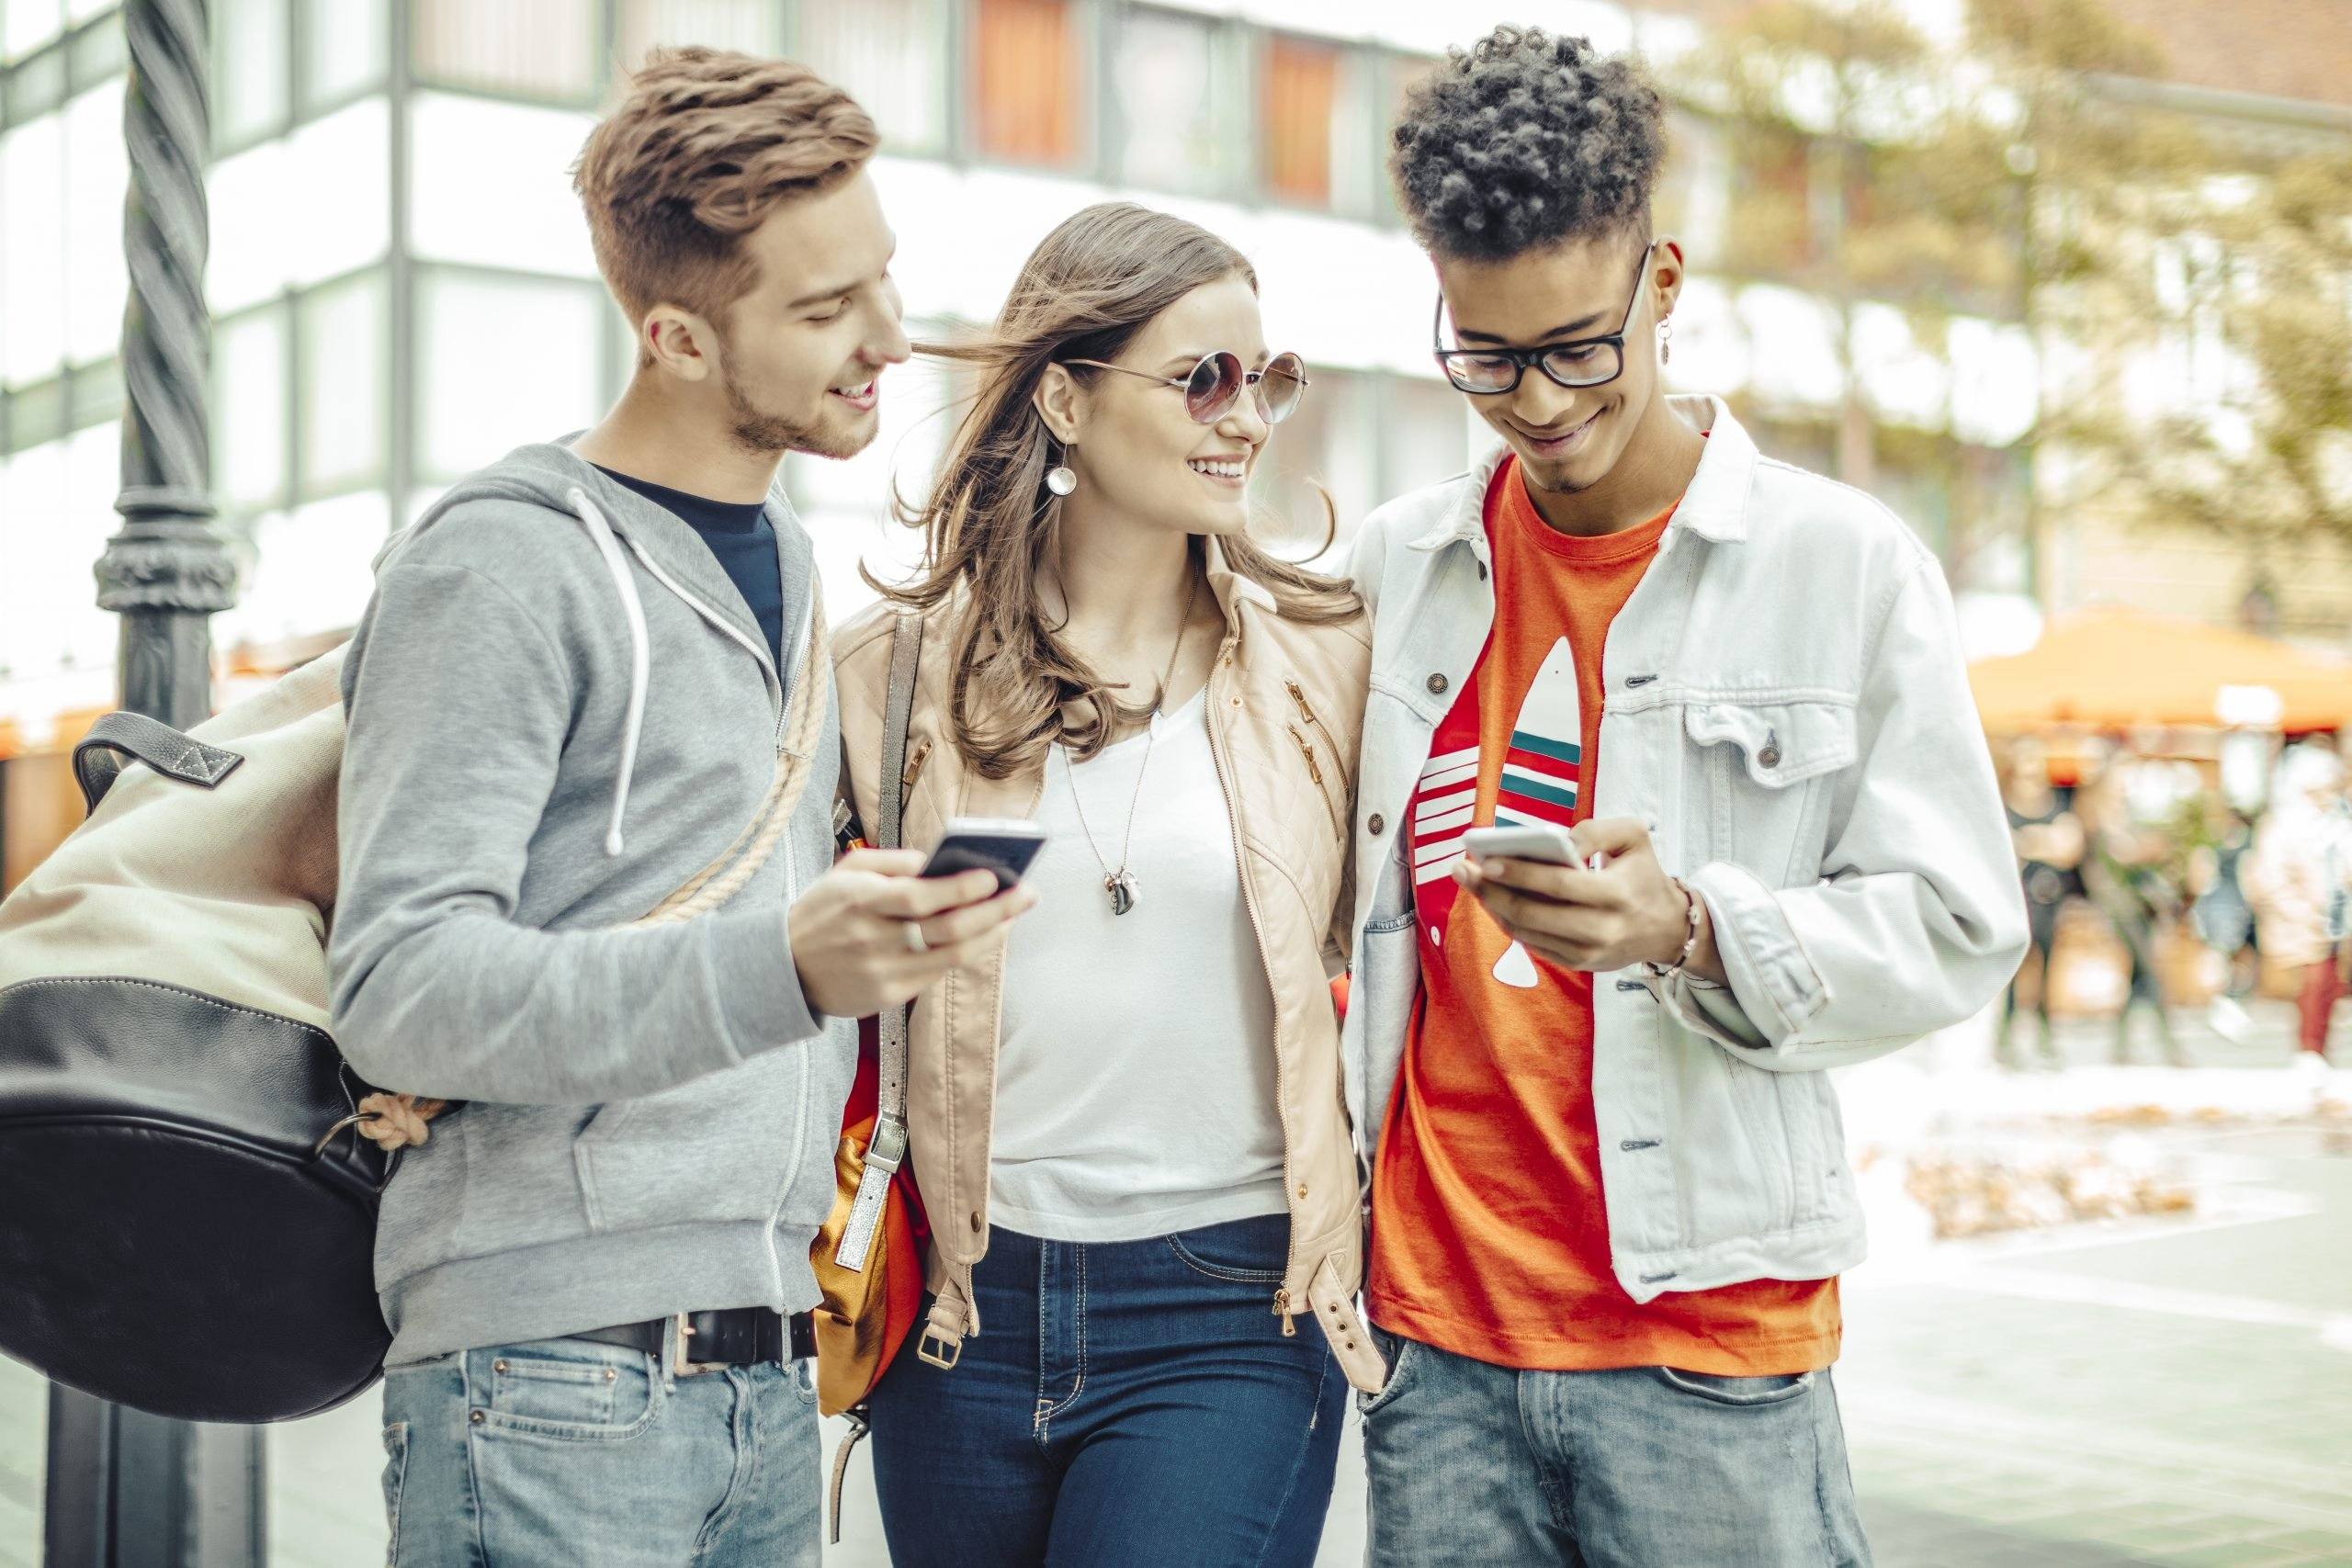 Renting to Millennials : The Possibilities and the Liabilities